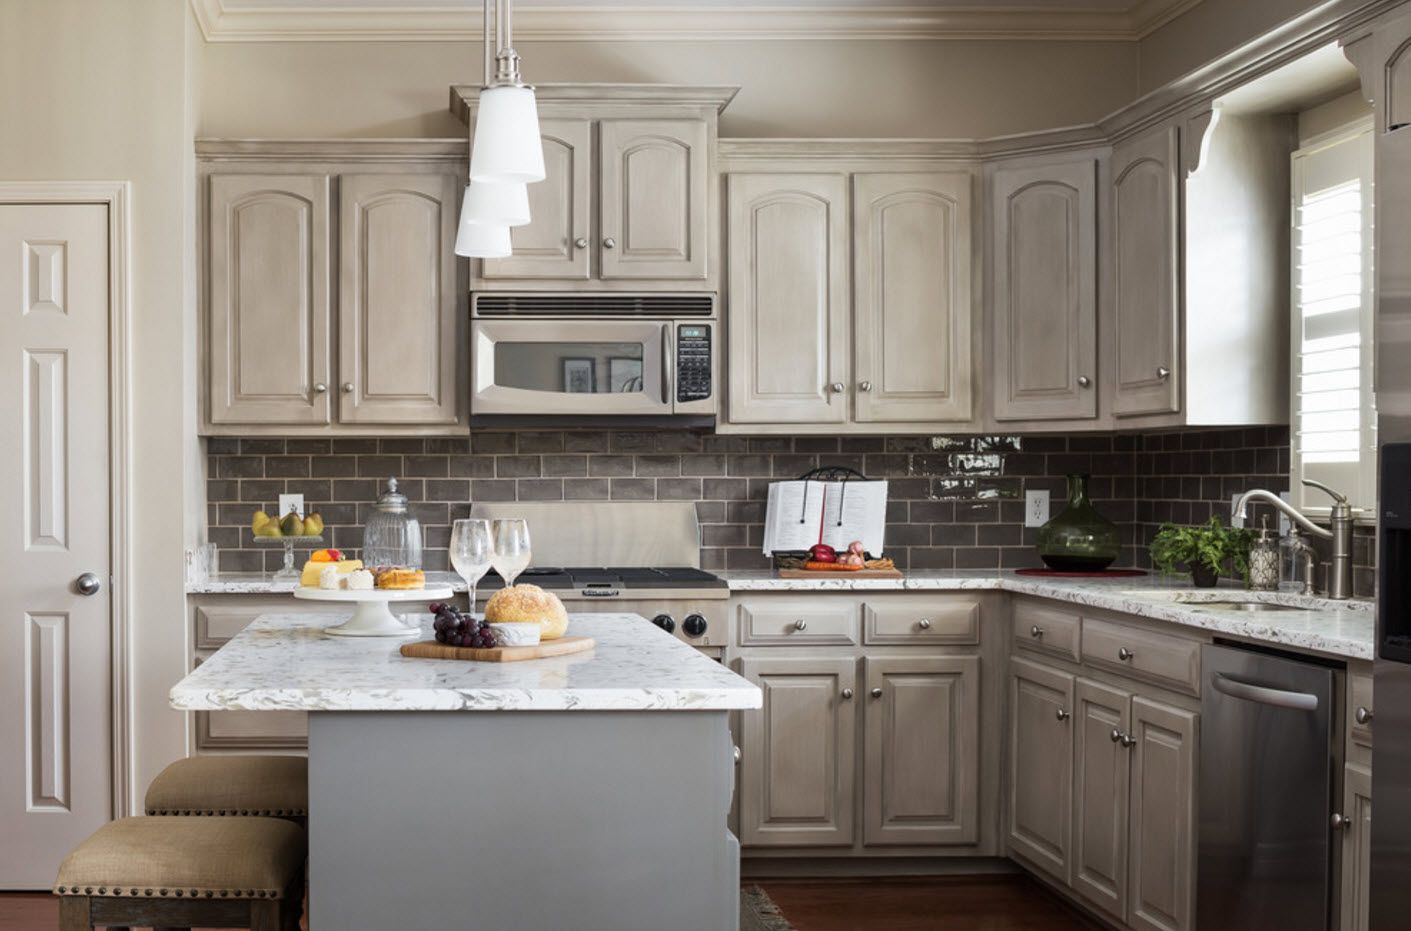 40 Square Feet Kitchen Modern Design Ideas & Layout Types. A touch of Provence style